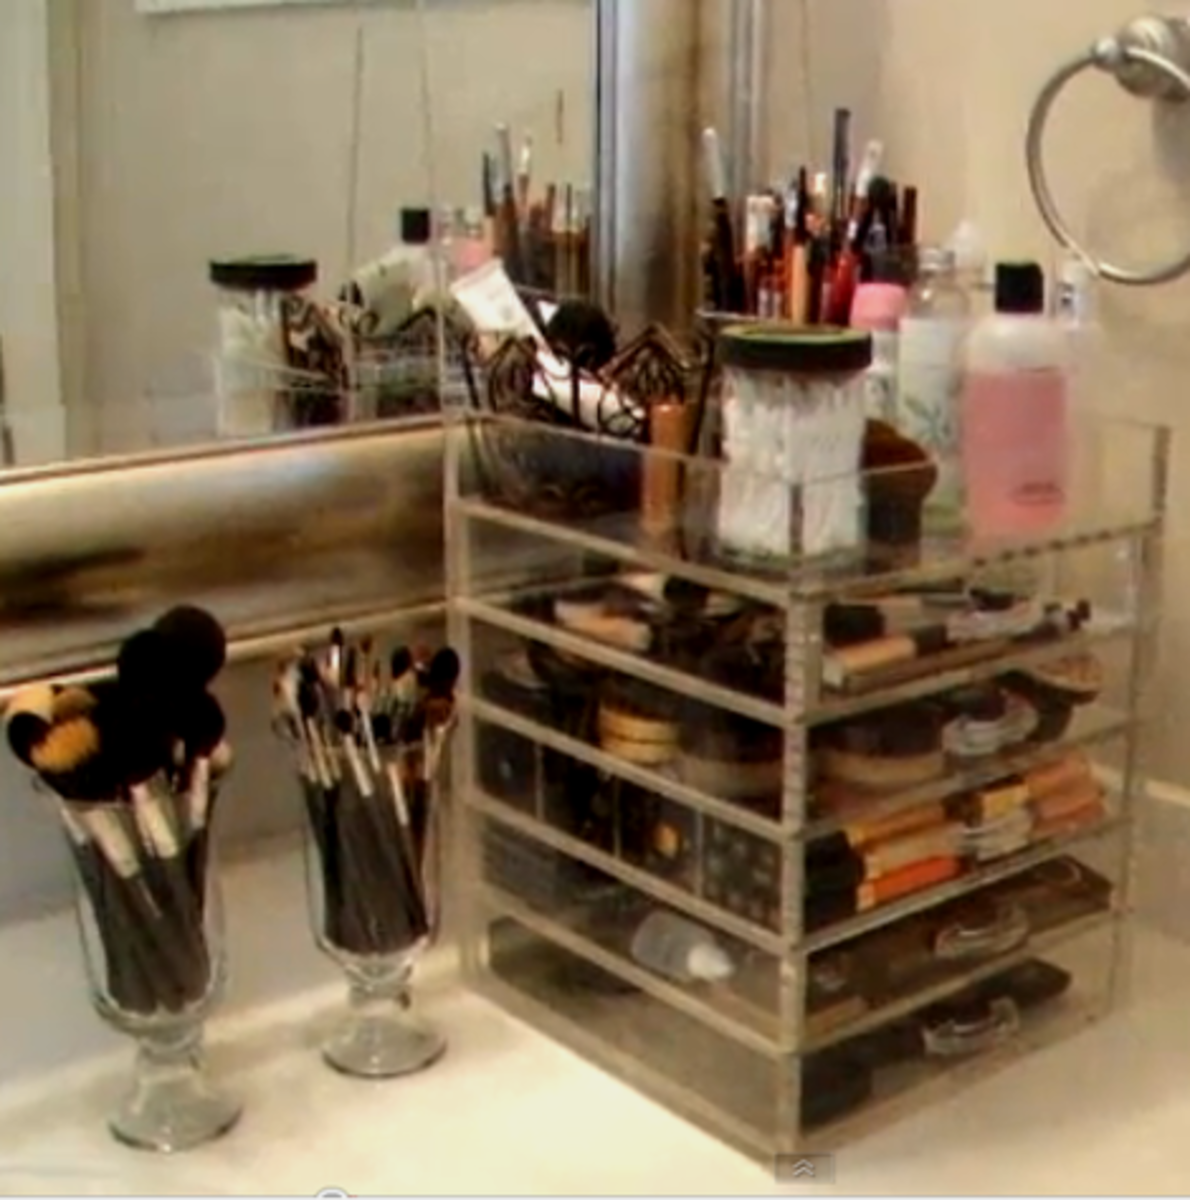 Bathroom Makeup Organizers kim kardashian bathroom makeup organizer - mugeek vidalondon